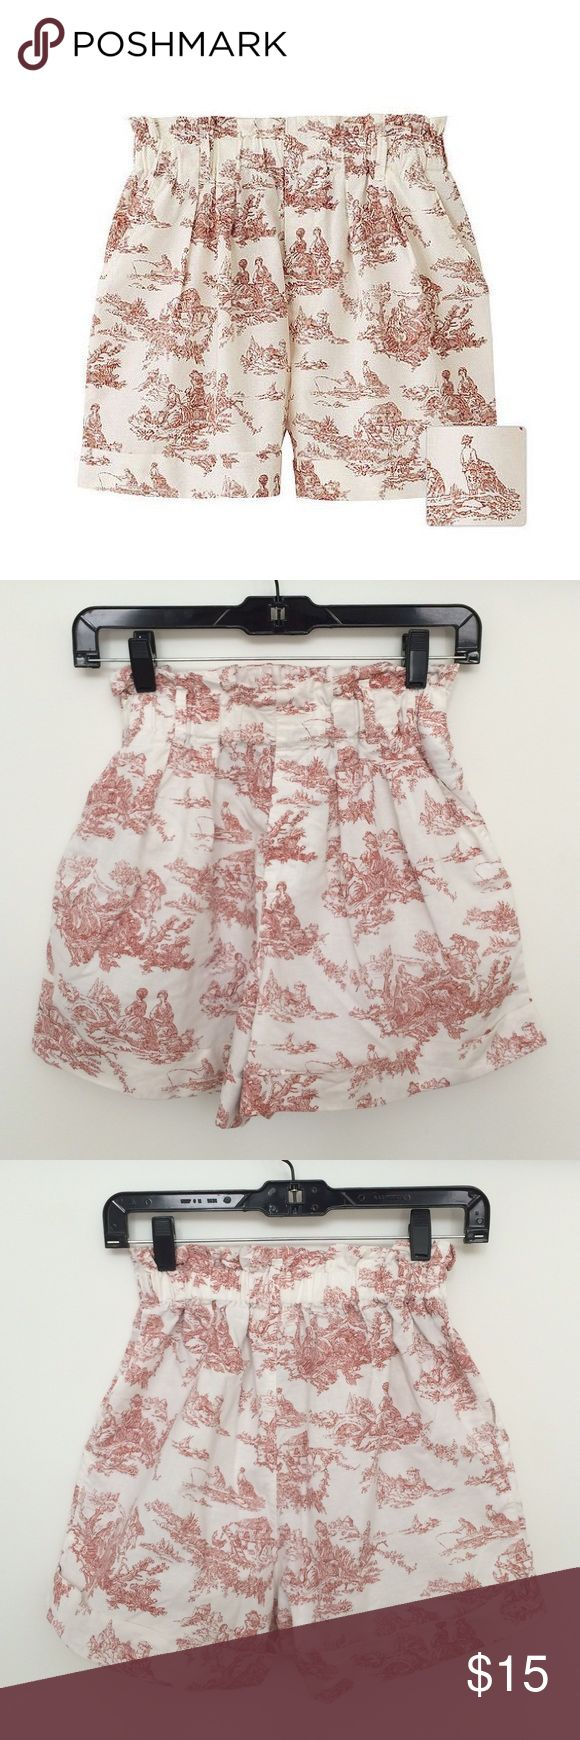 Uniqlo x Cabbages & Roses High Waist Flare Shorts Rare, hard to find collaboration between Uniqlo and Cabbages & Roses. Super comfortable with drawstring waist band. High waist style with flare bottom. Colonial style print. In like new condition. Too big for me. Labeled x-small but better fit for a small. Great for ladies with curves. Uniqlo Shorts